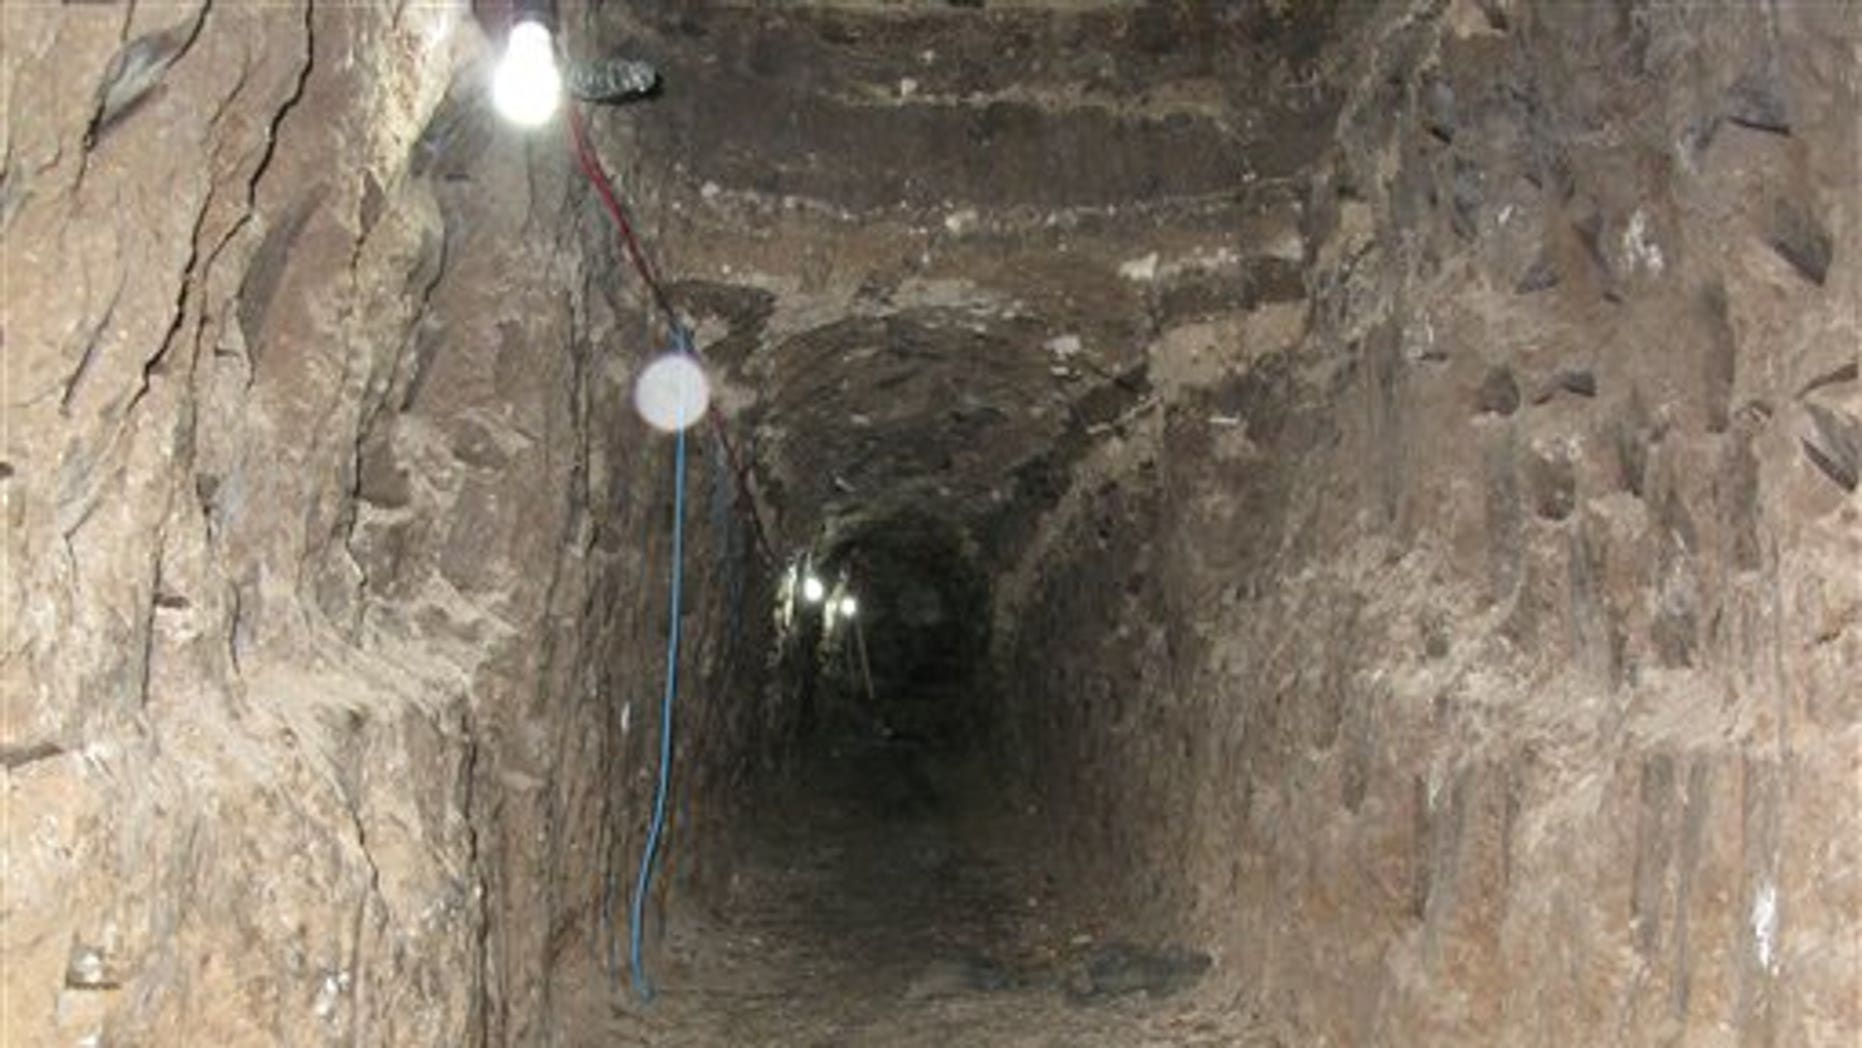 This photo released by U.S. Immigration and Customs Enforcement (ICE) on Friday, Nov. 26, 2010, shows a cross-border tunnel that authorities say was used as a major underground drug passage. The tunnel found Thursday is 2,200 feet long, more than seven football fields, and runs from the kitchen of a home in Tijuana, Mexico, to two warehouses in San Diego's Otay Mesa industrial district, said Mike Unzueta, head of investigations at U.S. Immigration and Customs Enforcement in San Diego. (AP Photo/U.S. Immigration and Customs Enforcement)